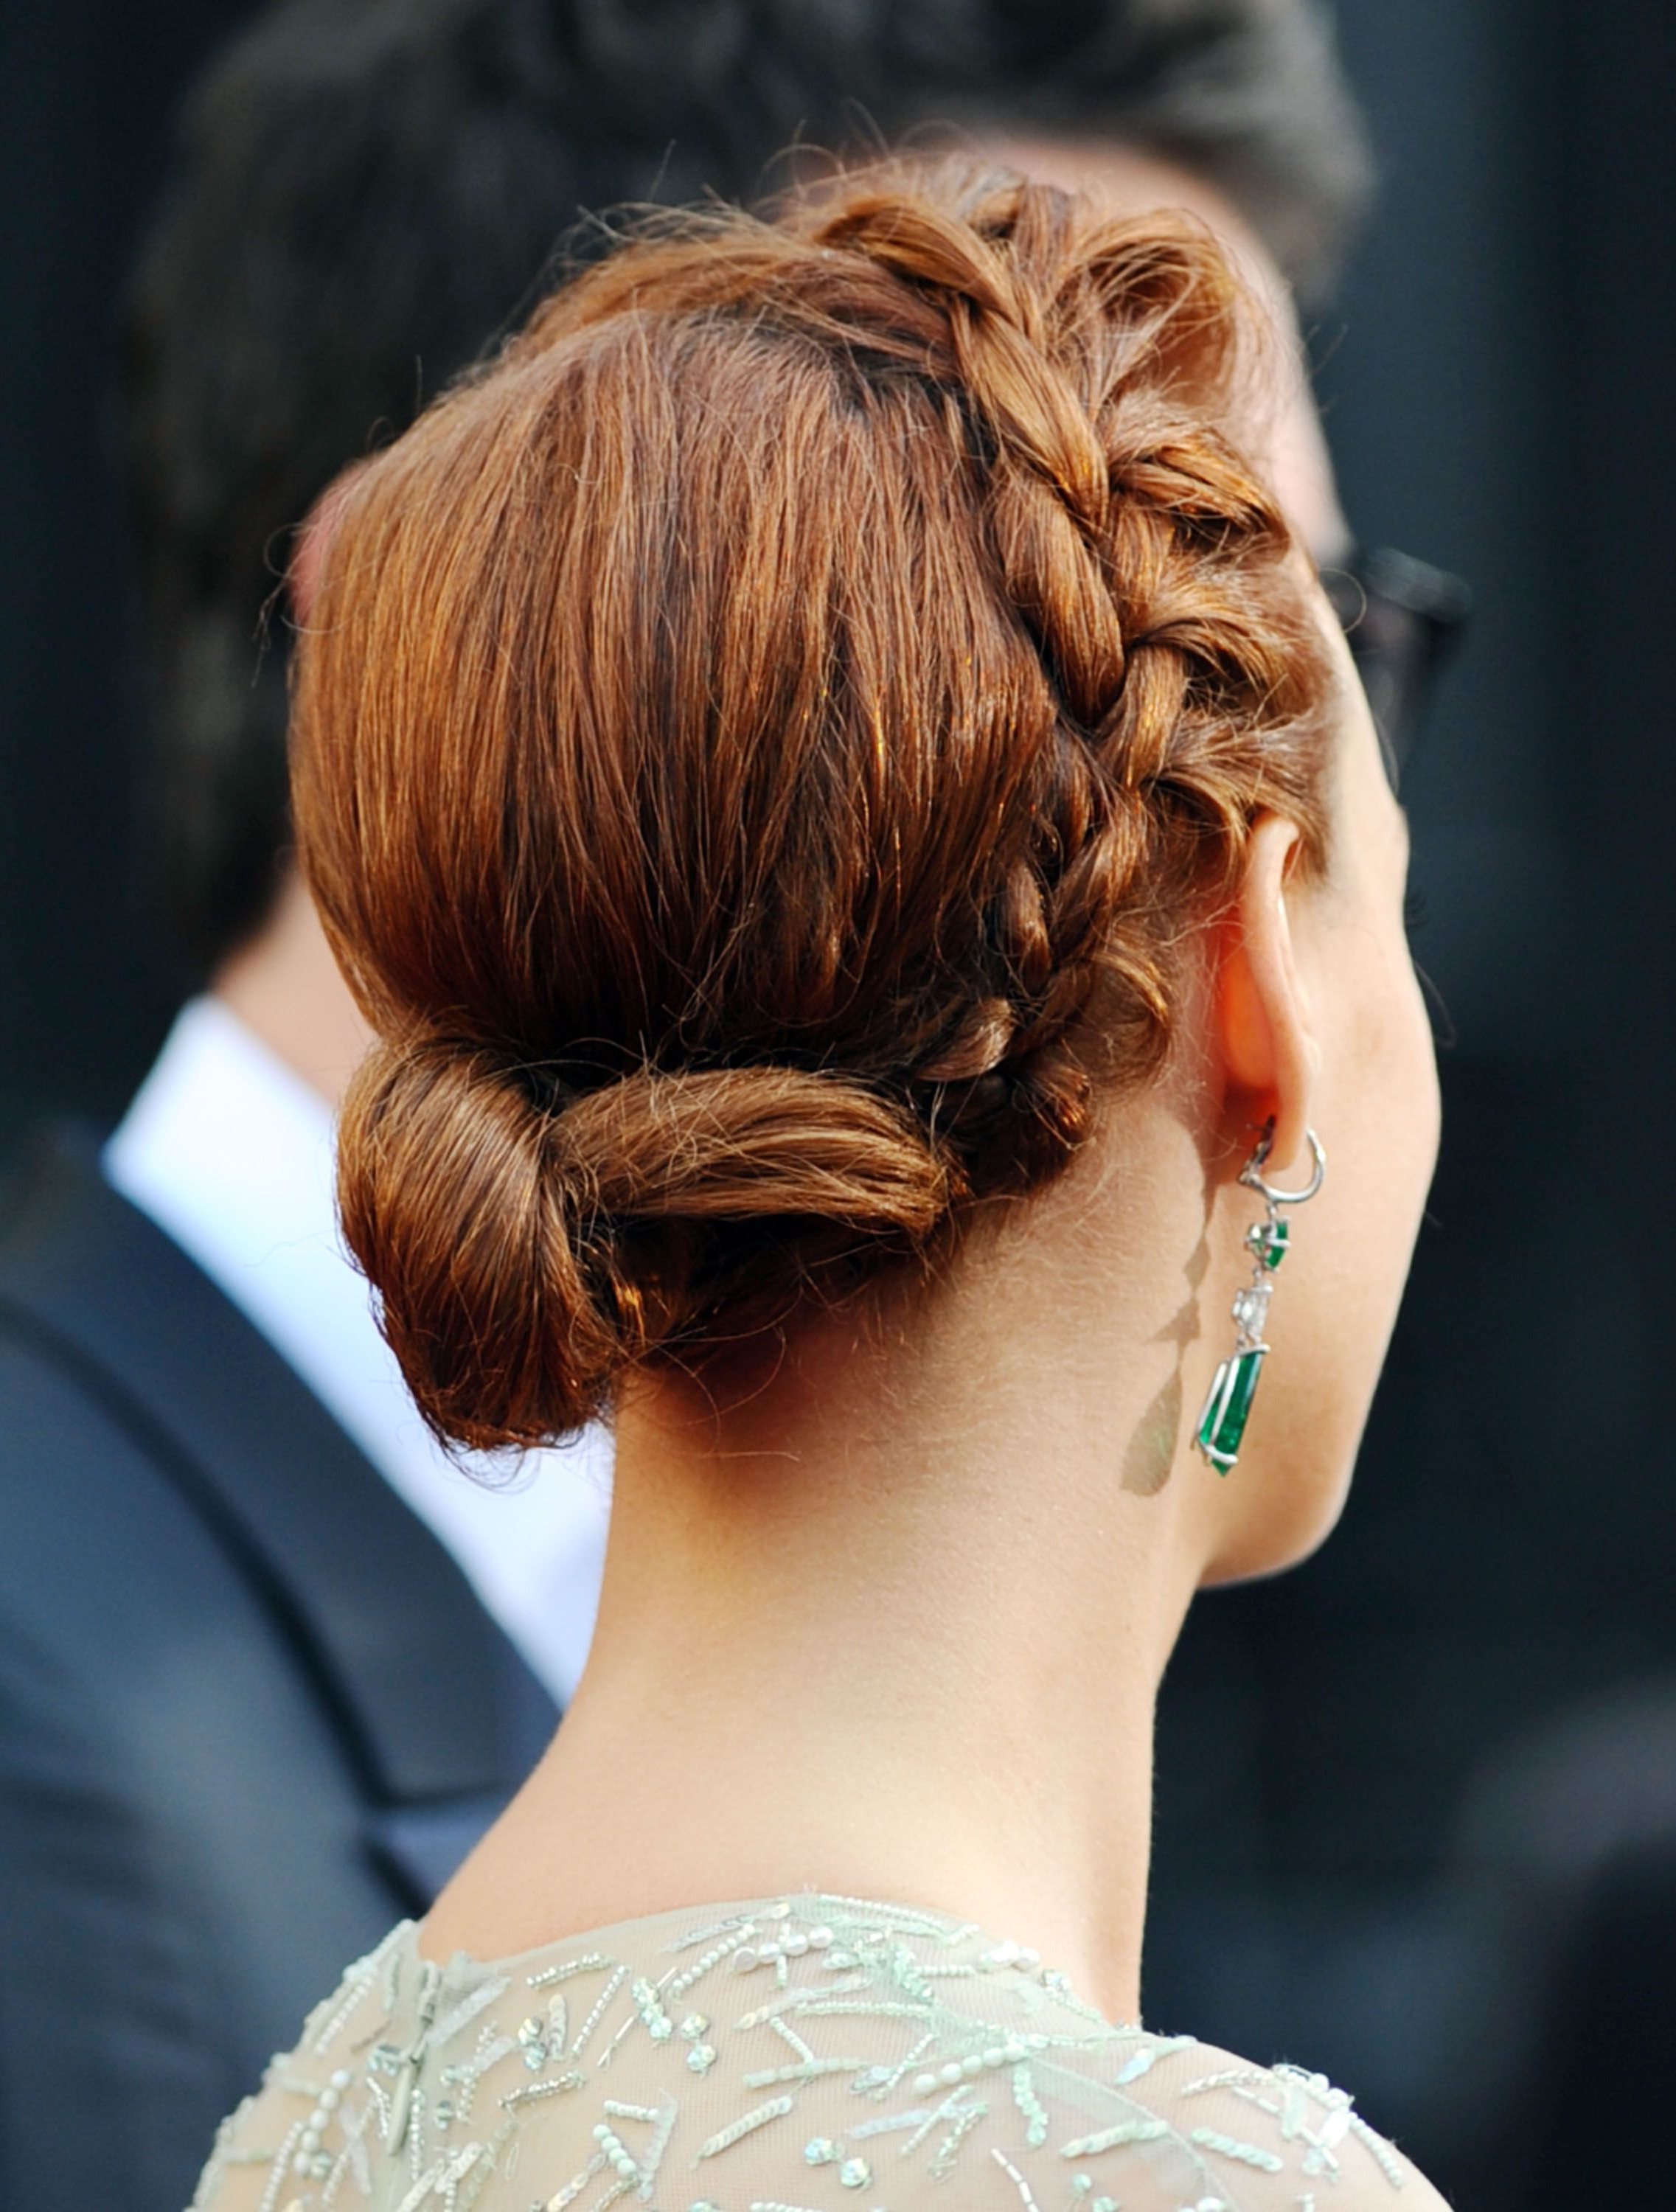 60 Easy Braided Hairstyles – Cool Braid How To's & Ideas Within Most Current Plaited Low Bun Braided Hairstyles (View 18 of 20)